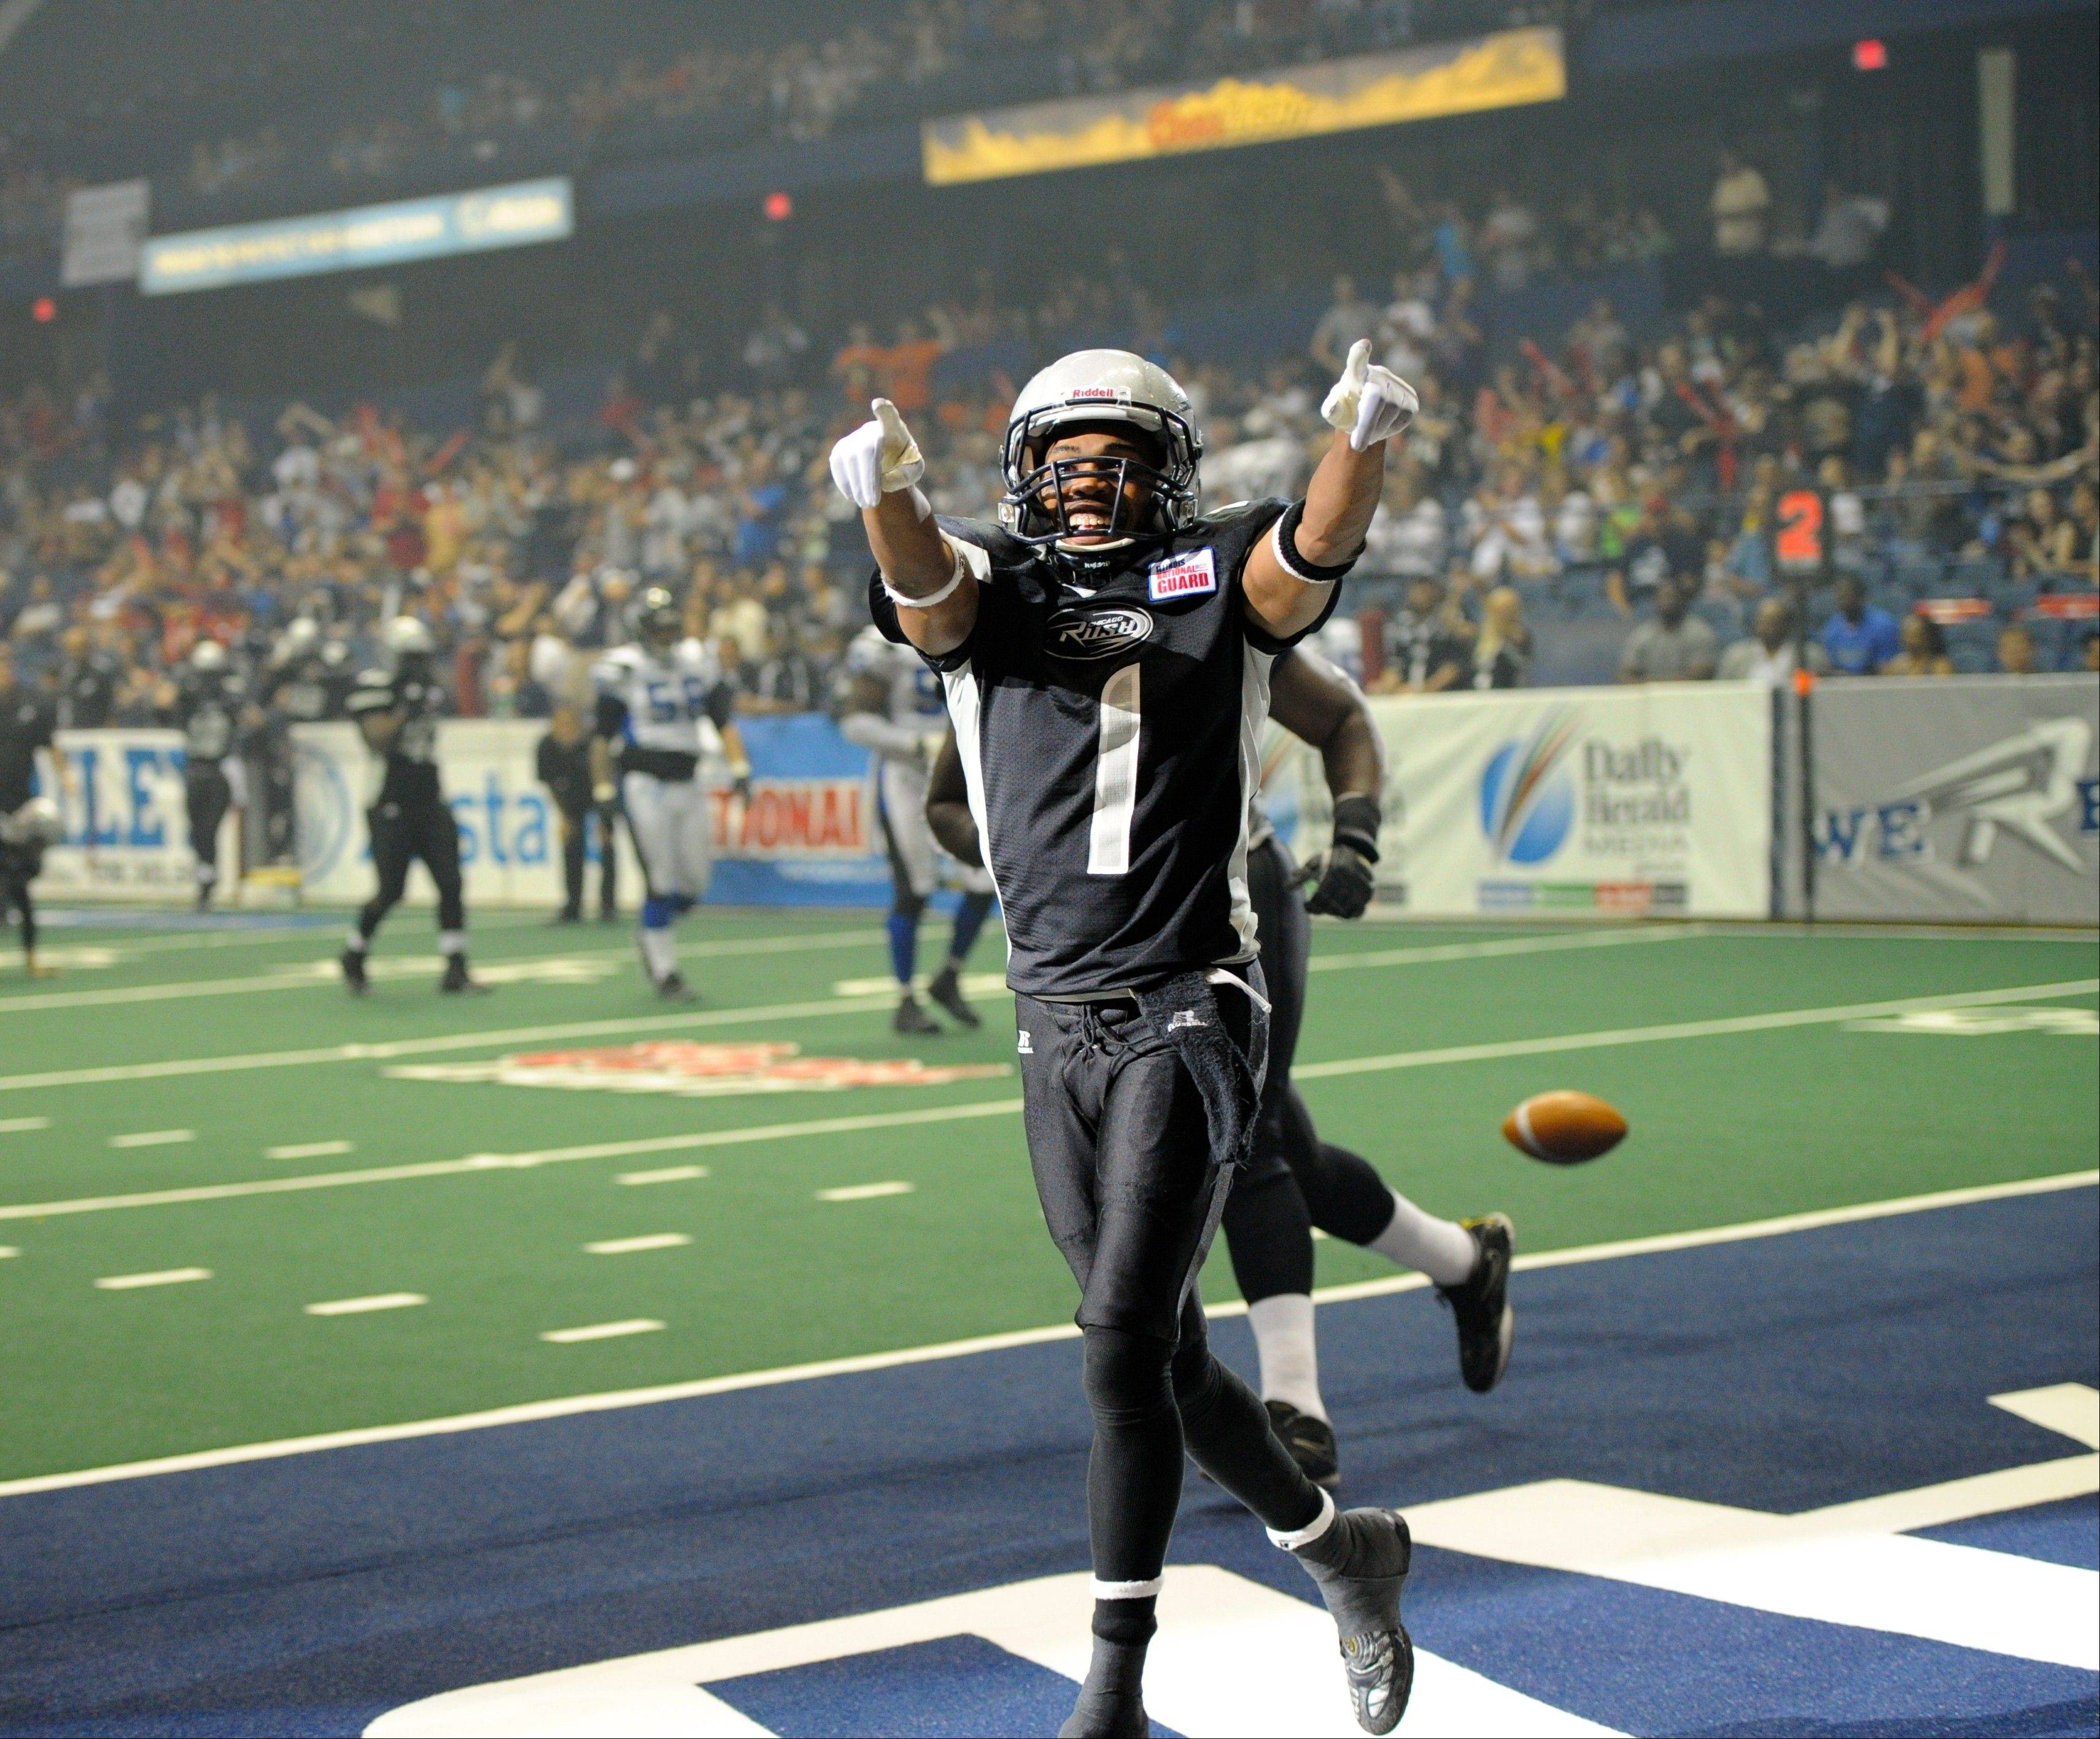 Wide receiver Reggie Gray and the Chicago Rush will open their 2013 Arena Football Season on Saturday against the Iowa Barnstormers at Allstate Arena.